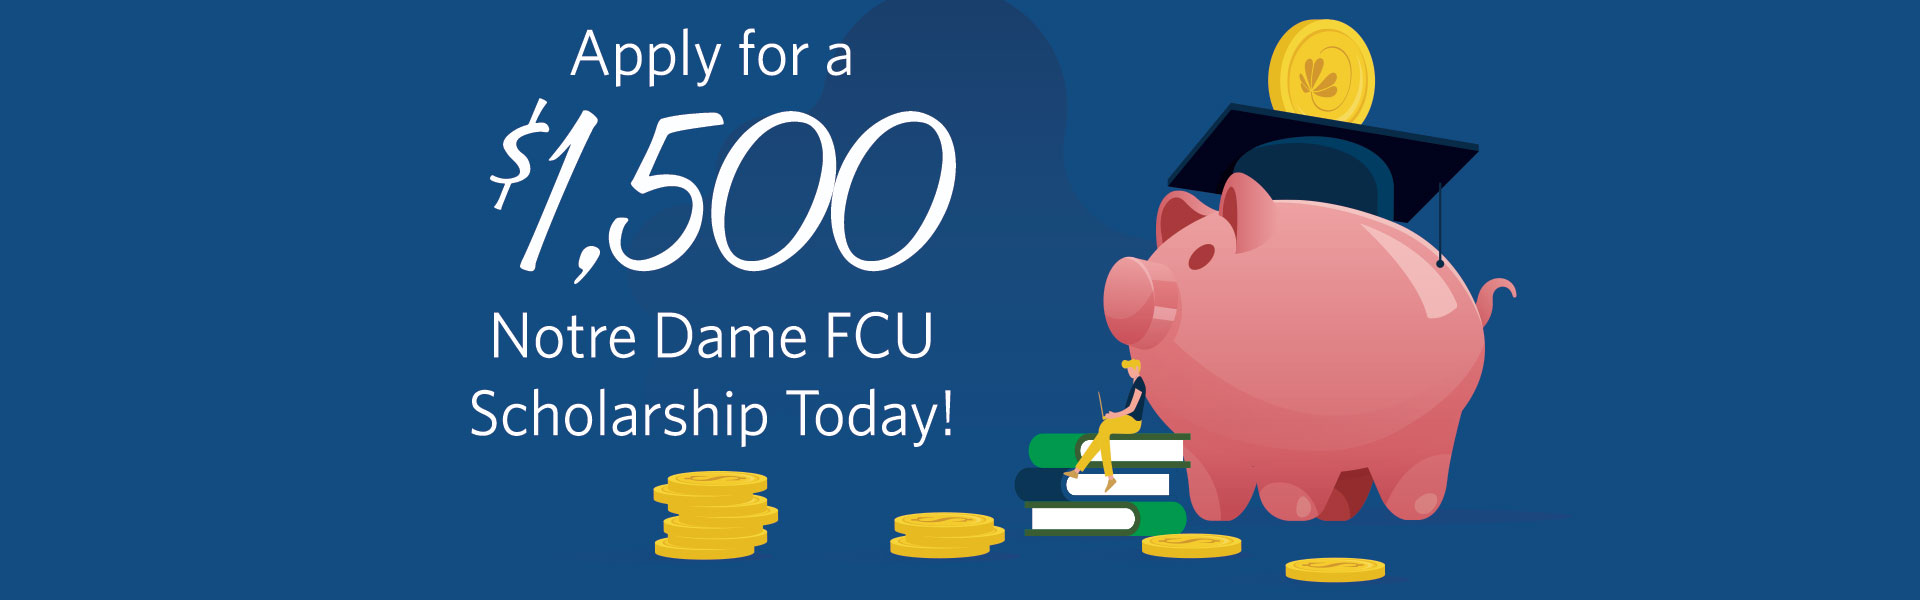 Apply for a $1,500 Notre Dame FCU scholarship today!